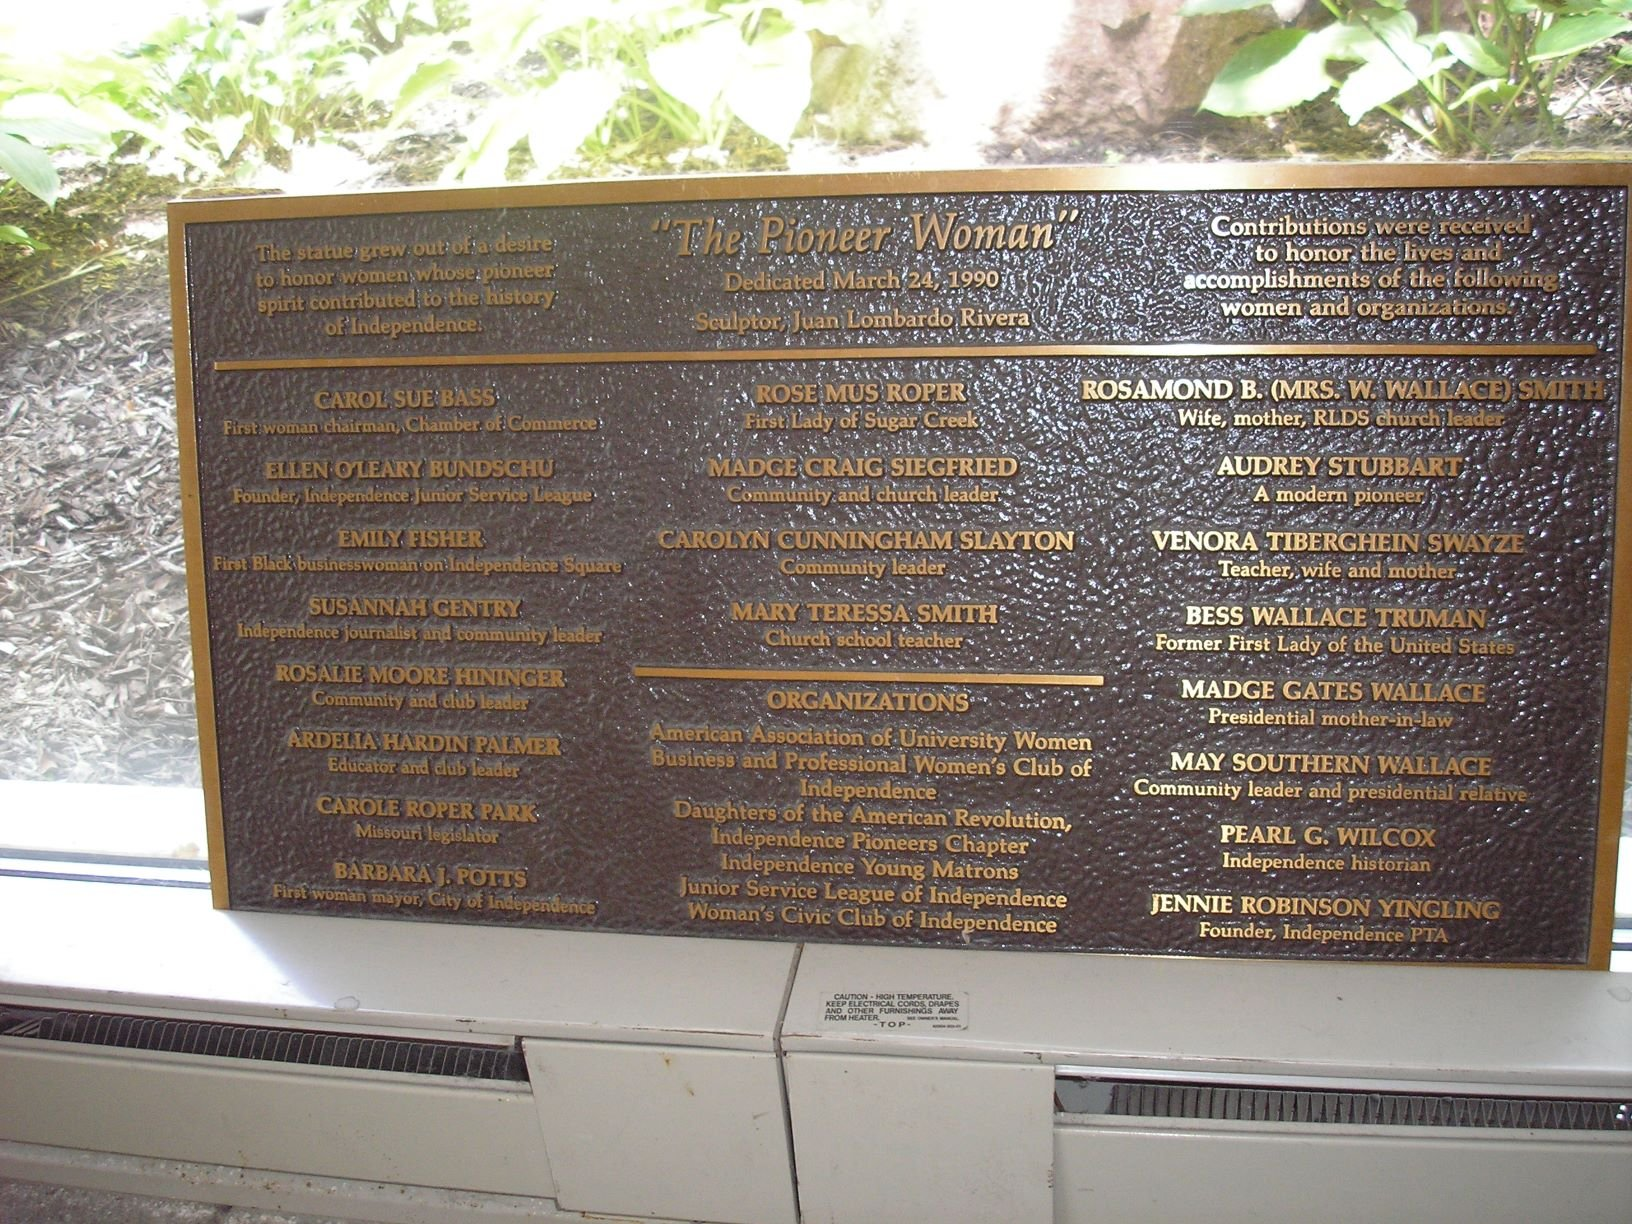 Plaque for 1990 Lombardo-Rivera Pioneer Woman statue. Photo by Cynthia Prescott.